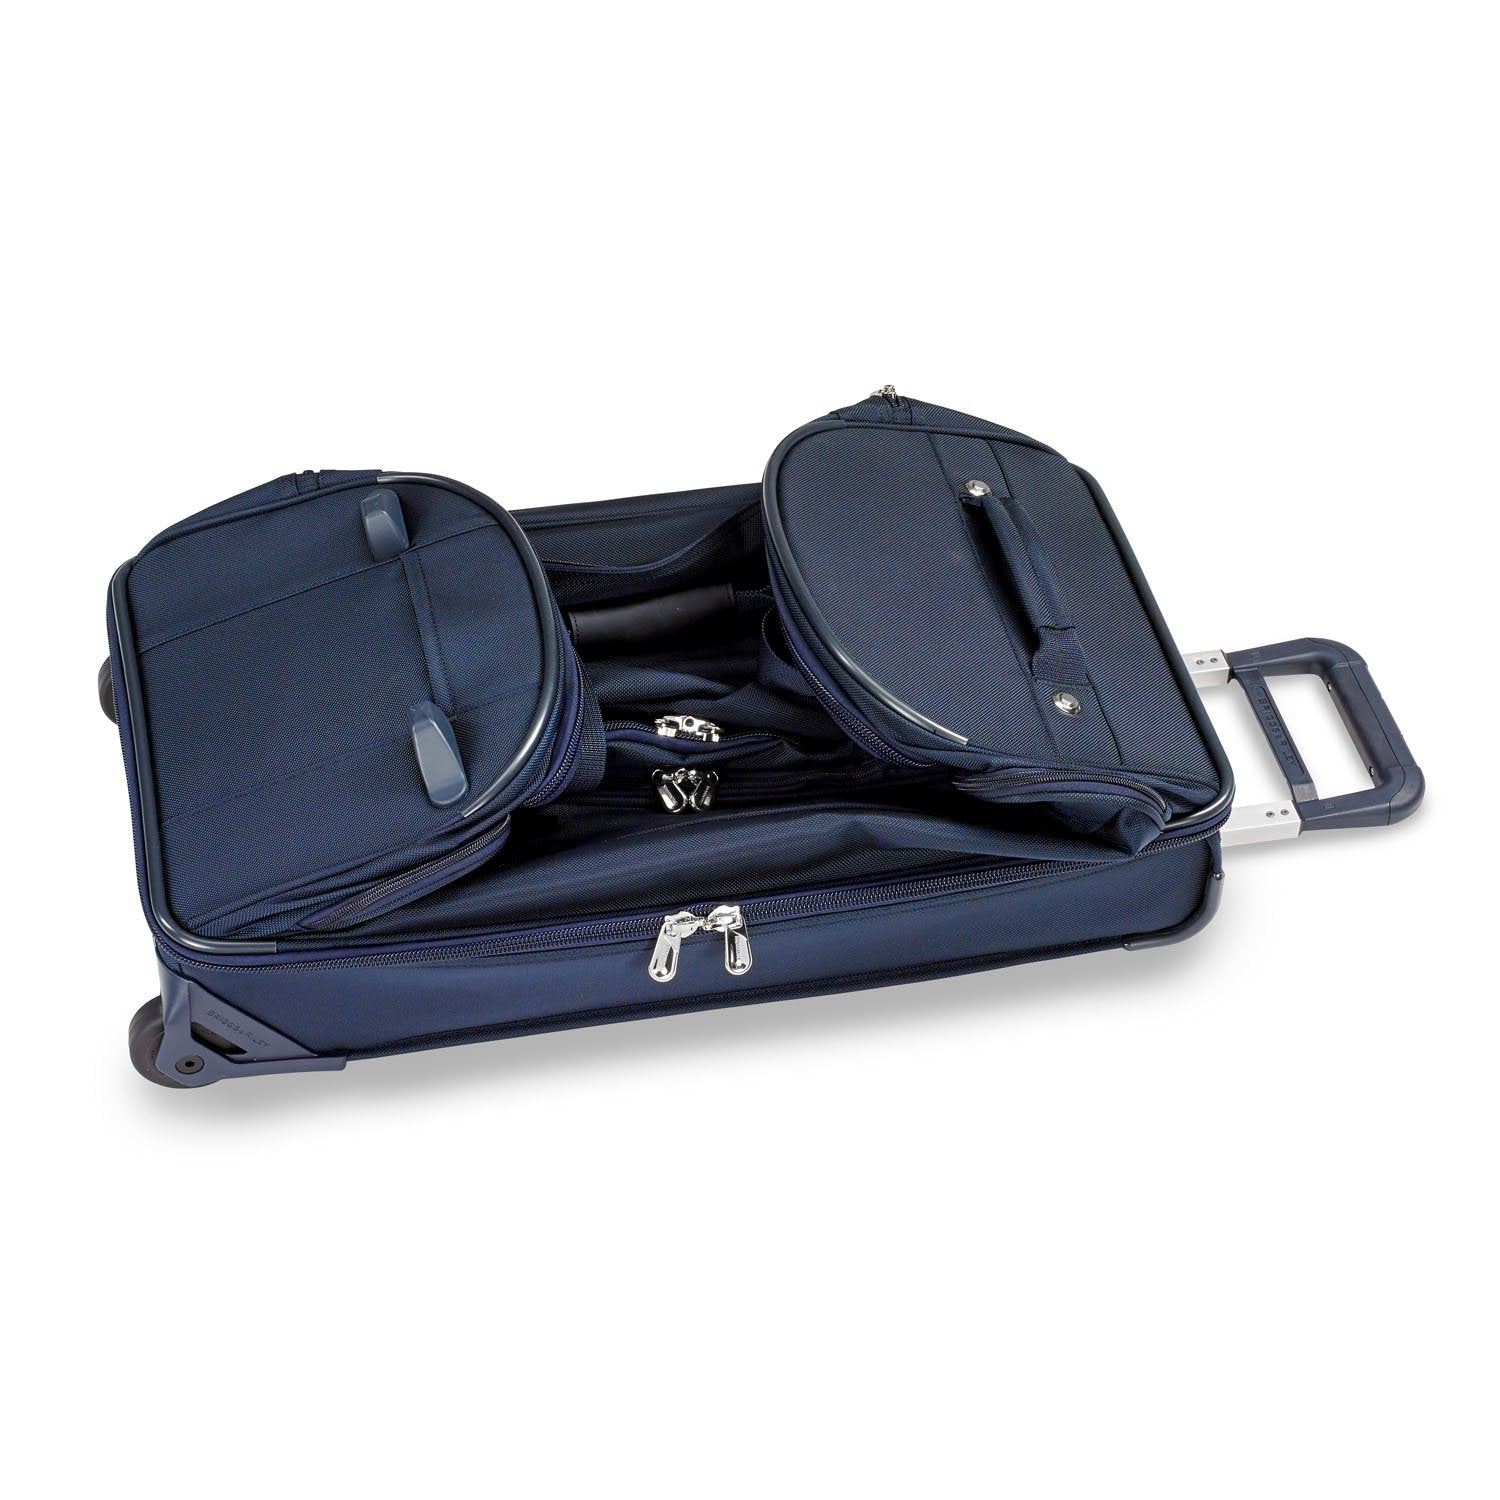 Briggs & Riley Baseline Medium Upright Duffle